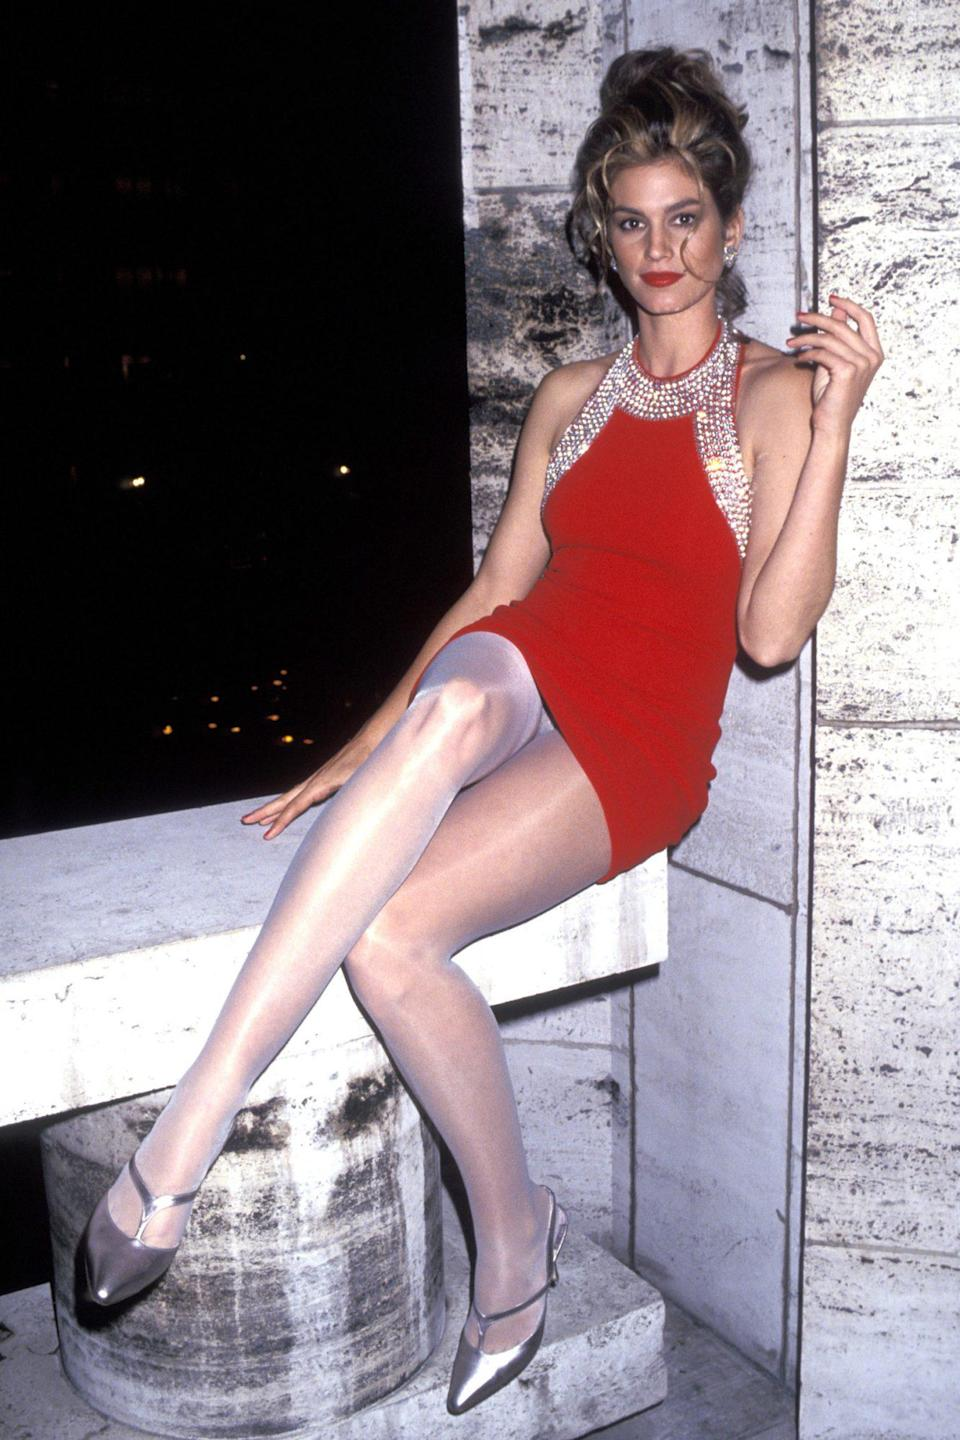 <p>Ravishing in red during the Revlon Unforgettable Women event in 1991 at N.Y.C.'s Lincoln Center.</p>